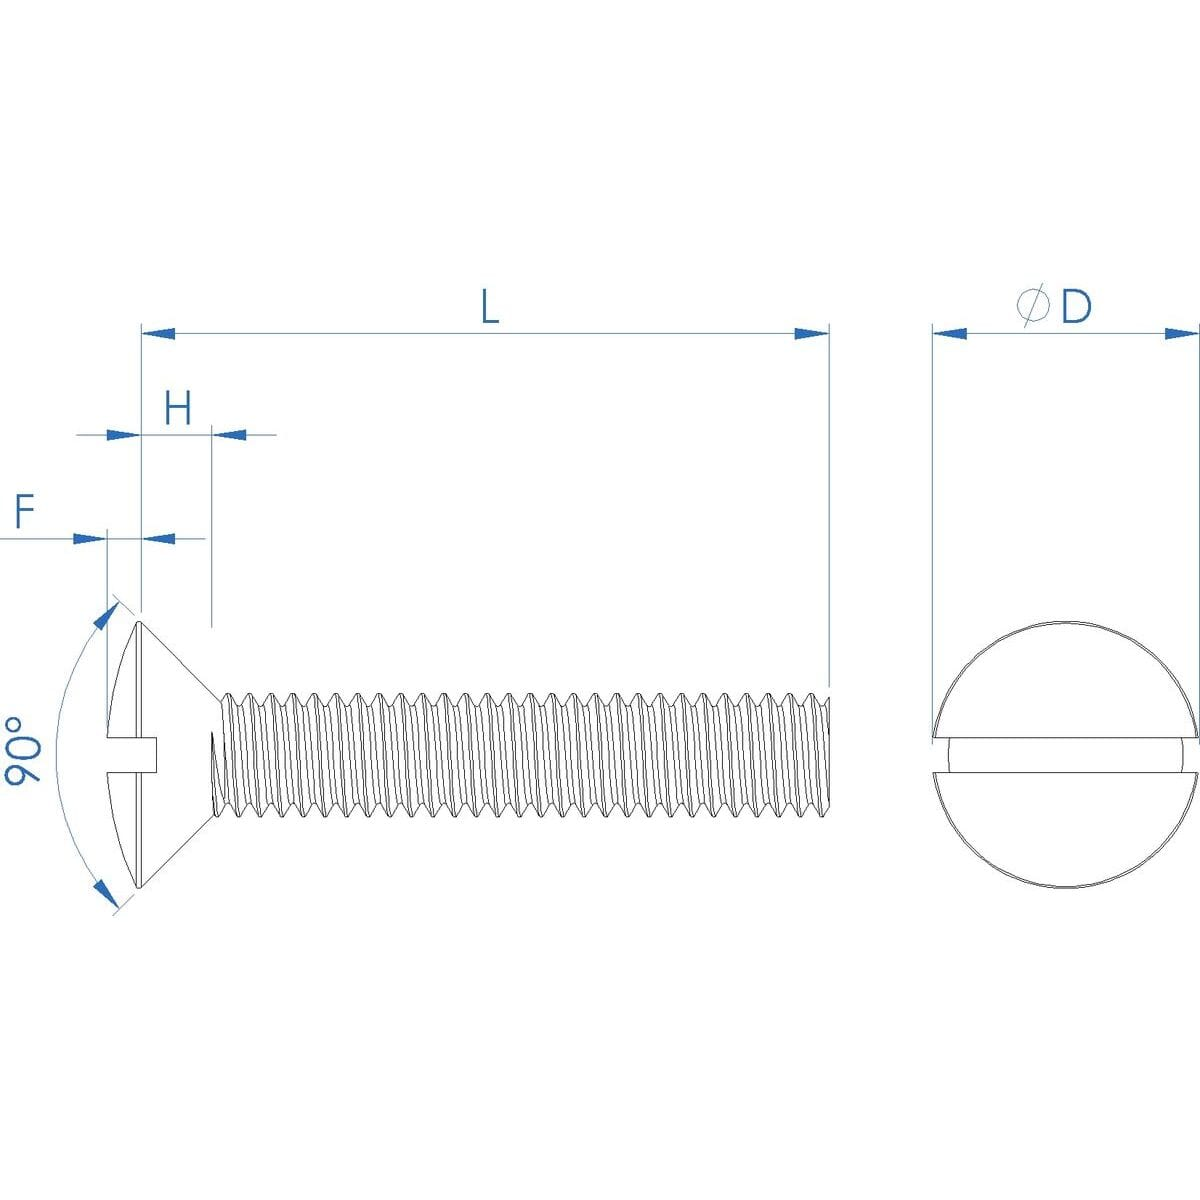 M3 x 6mm Raised Slotted Countersunk Screws (DIN 964) - Stainless Steel (A2) Drawing